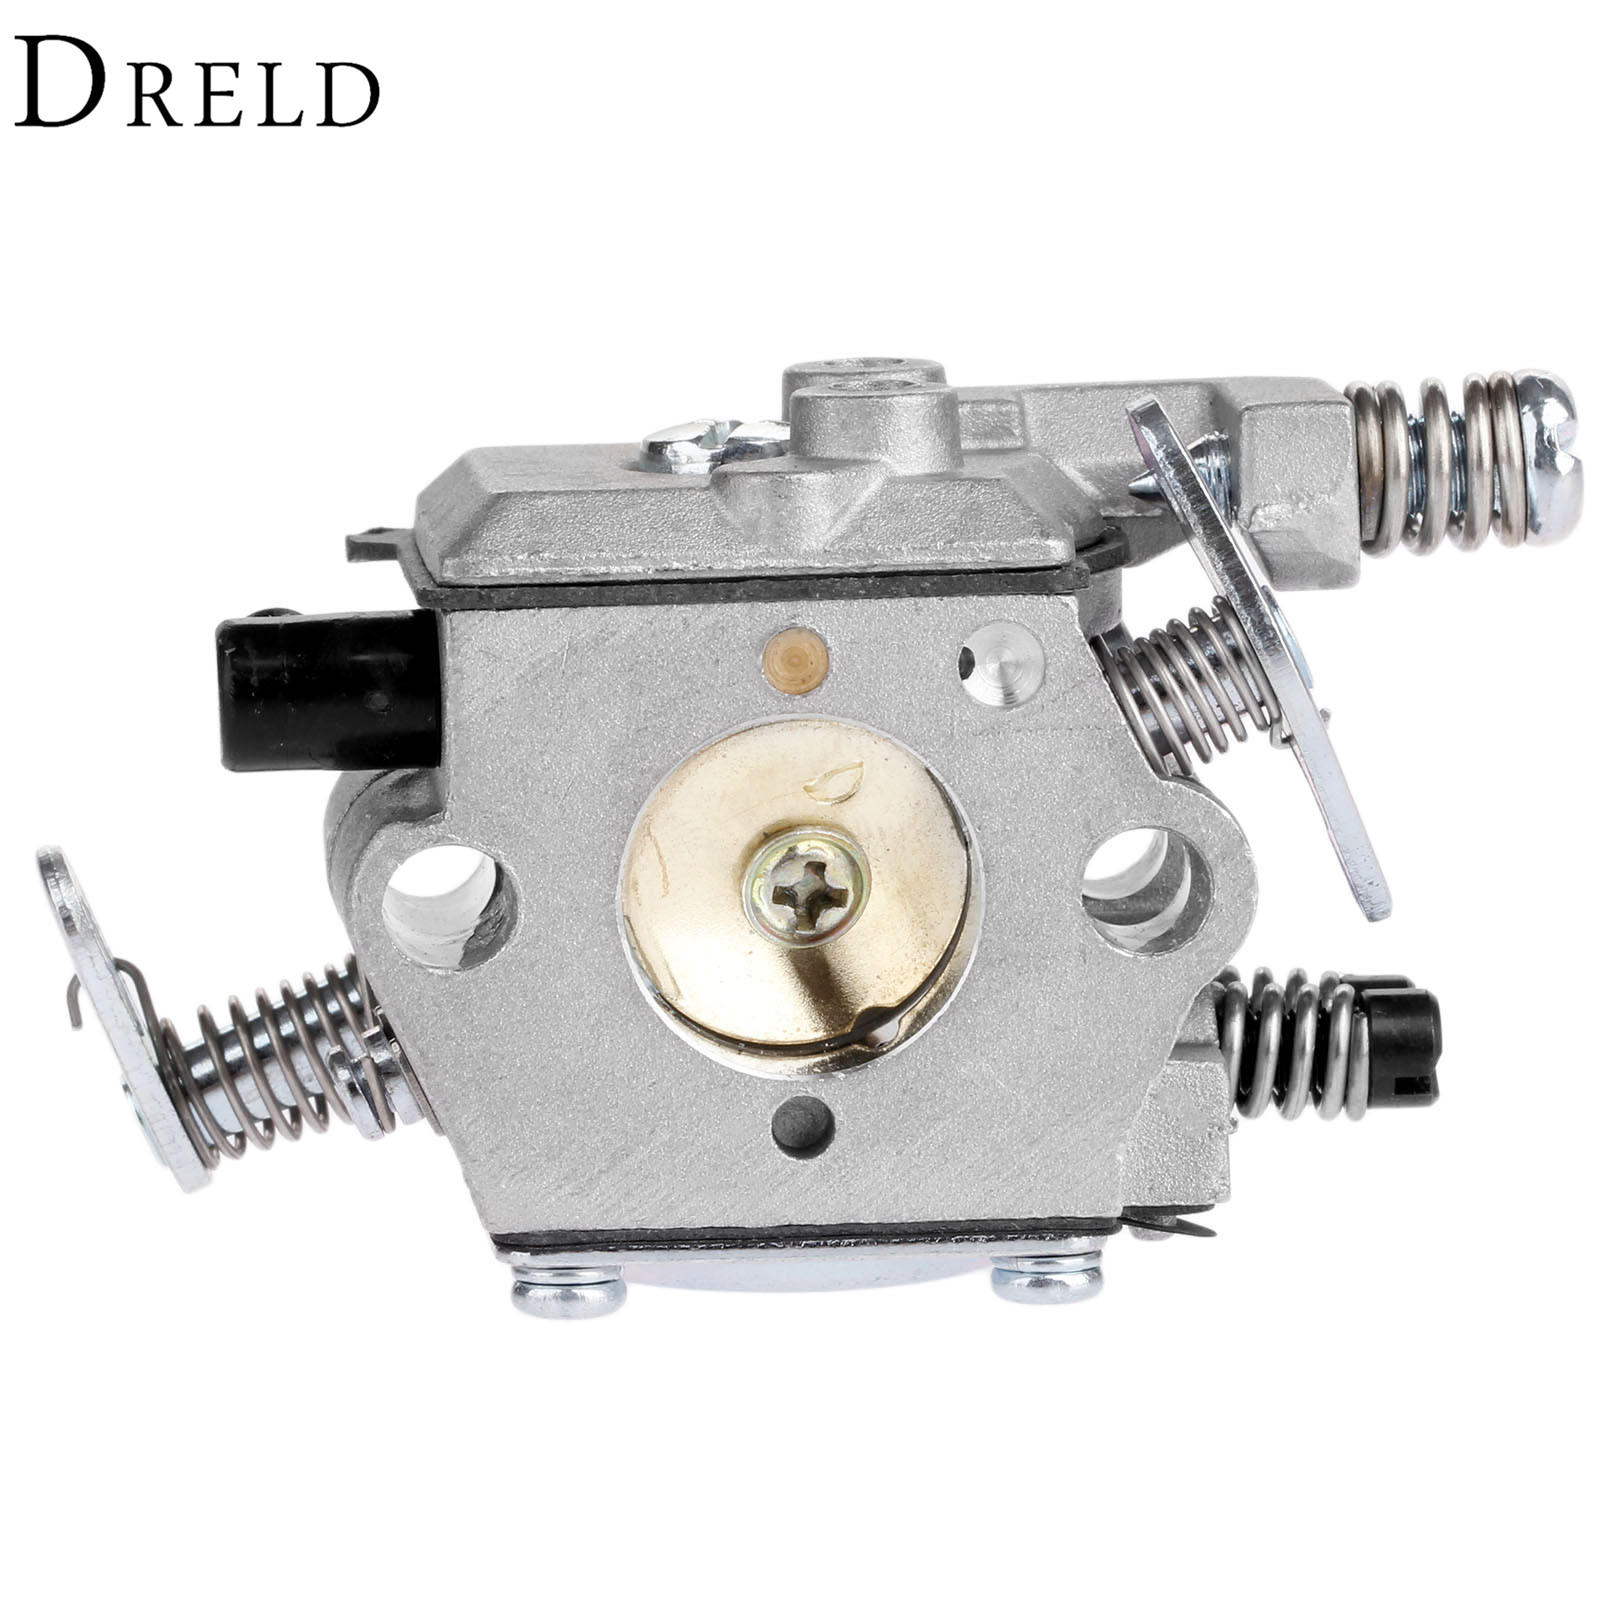 DRELD Chainsaw Carburetor Carb for STIHL 021 023 025 MS210 MS230 MS250 Chain Saw Spare Parts Garden Tools Parts Wholesale